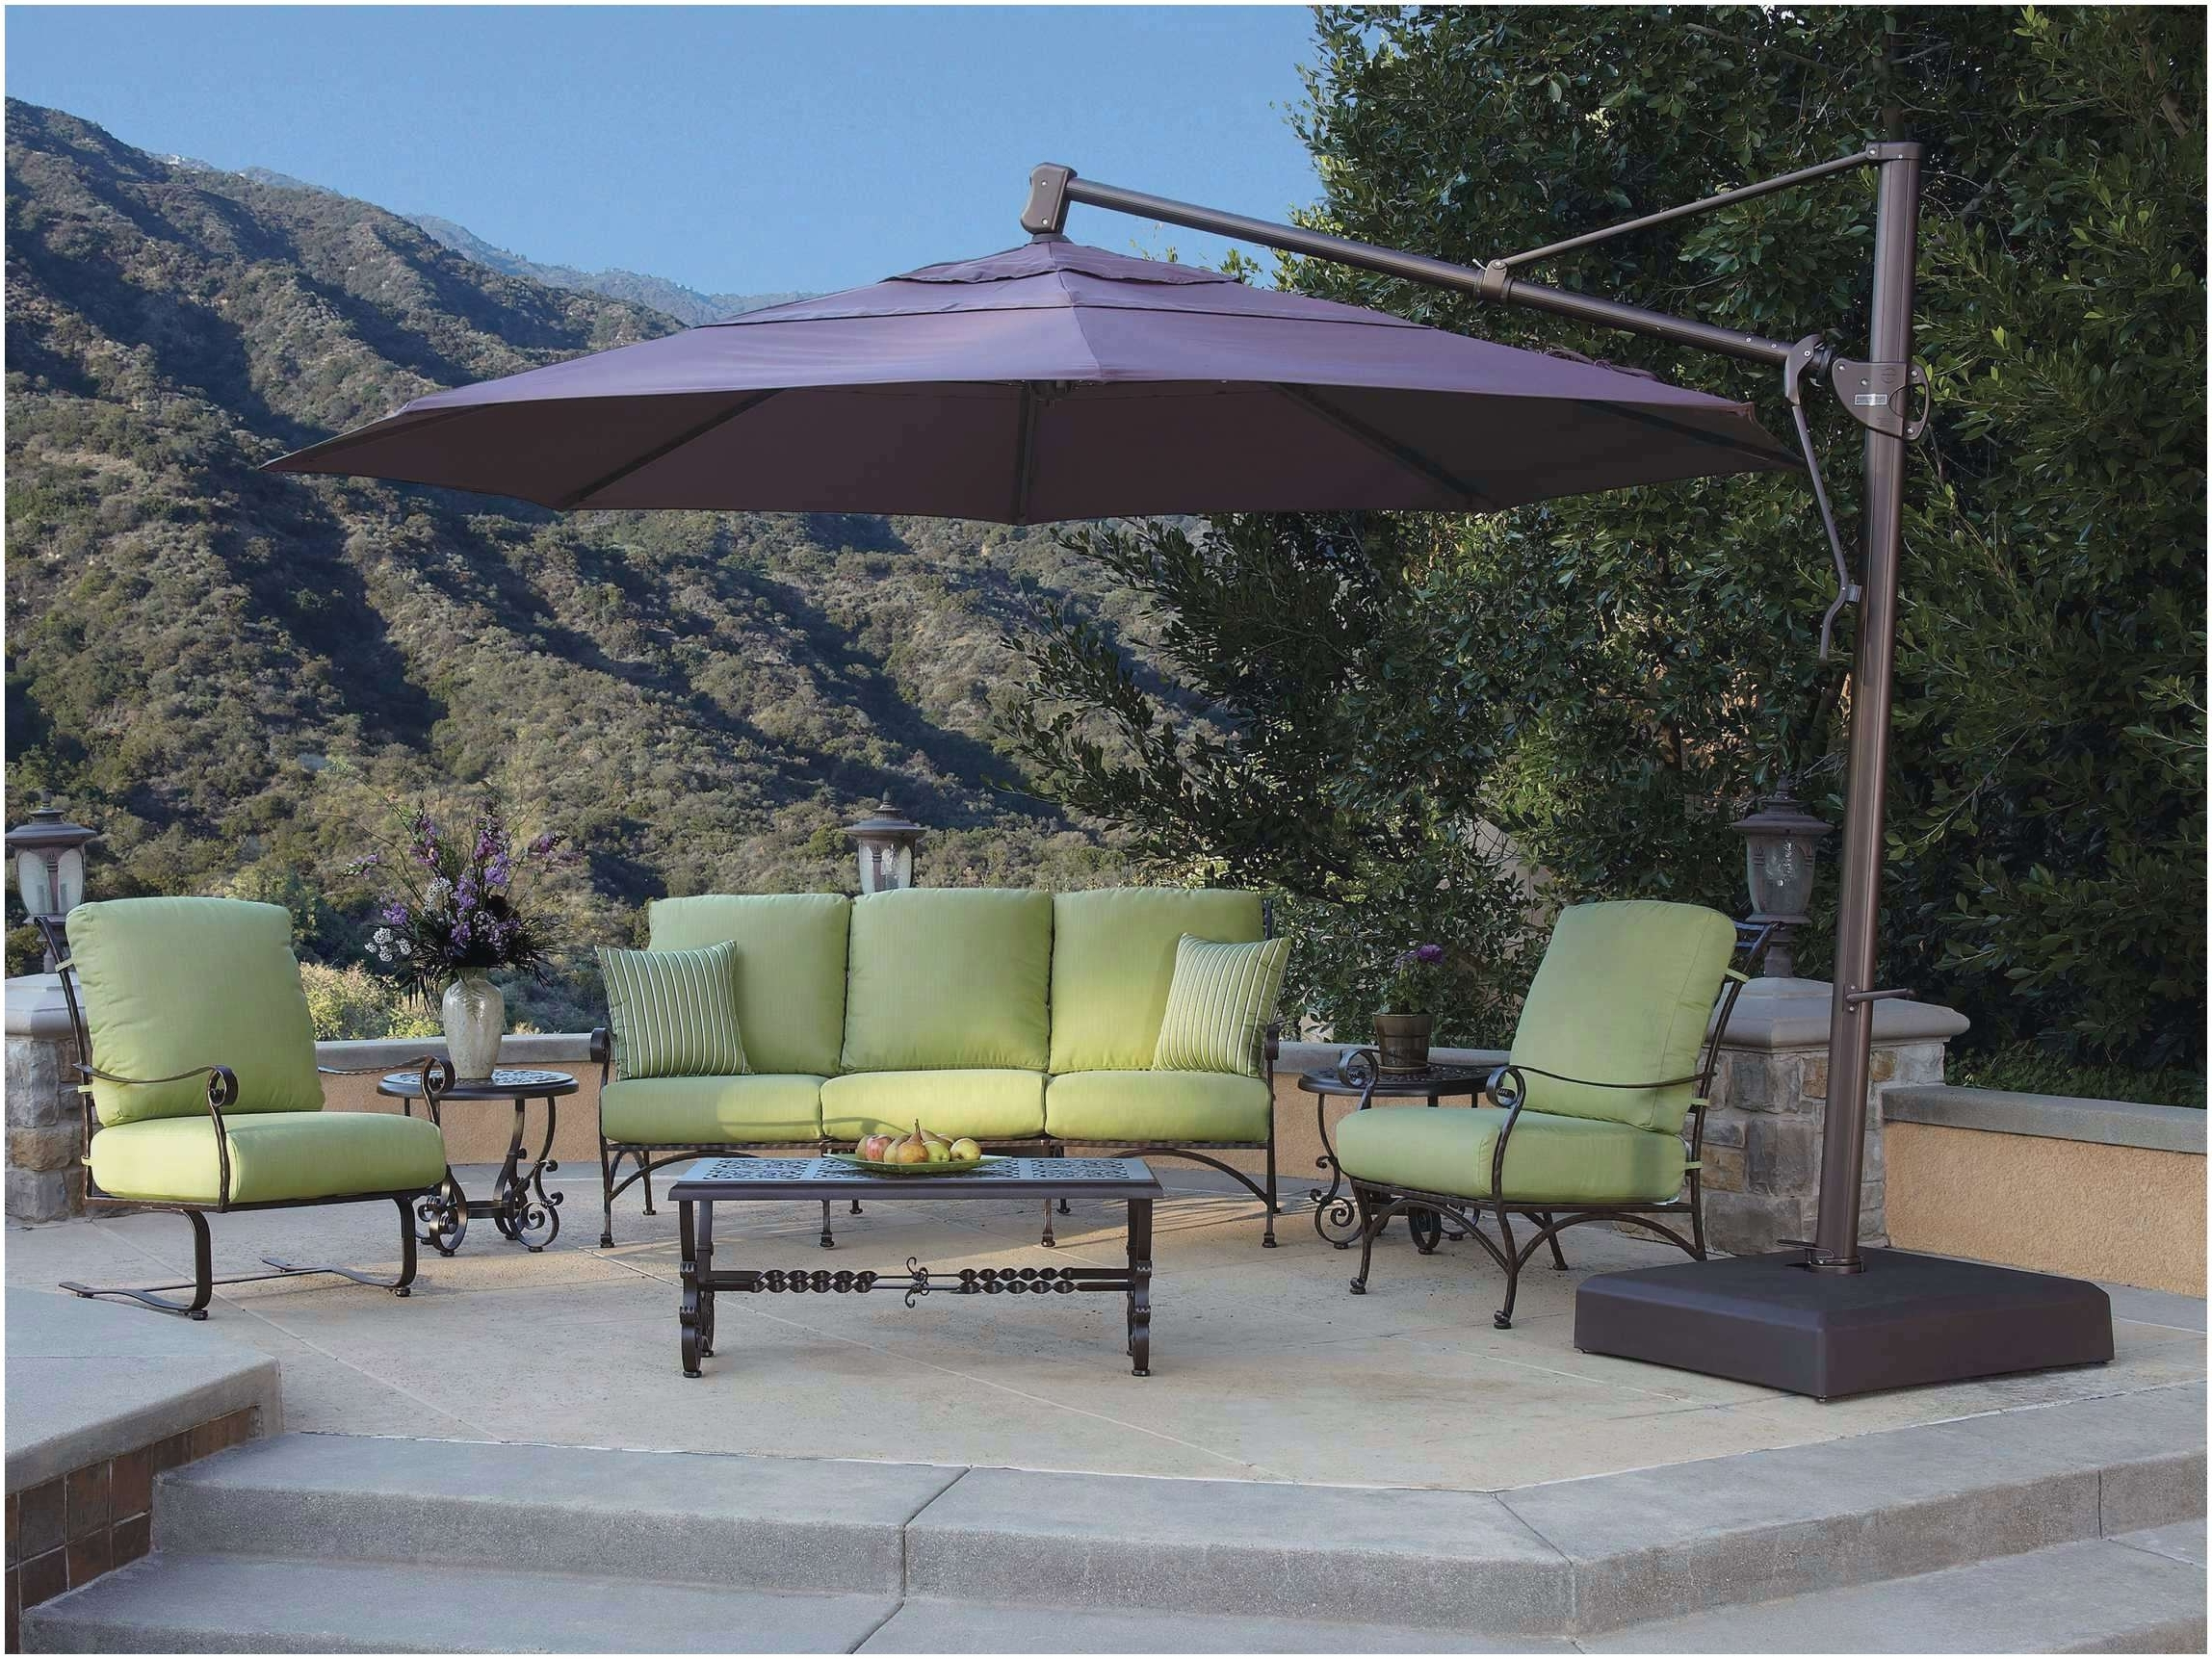 Garden Treasures Patio Umbrellas With Regard To Favorite Garden Treasures Umbrella Replacement Canopy The Right Choice Extra (Gallery 4 of 20)